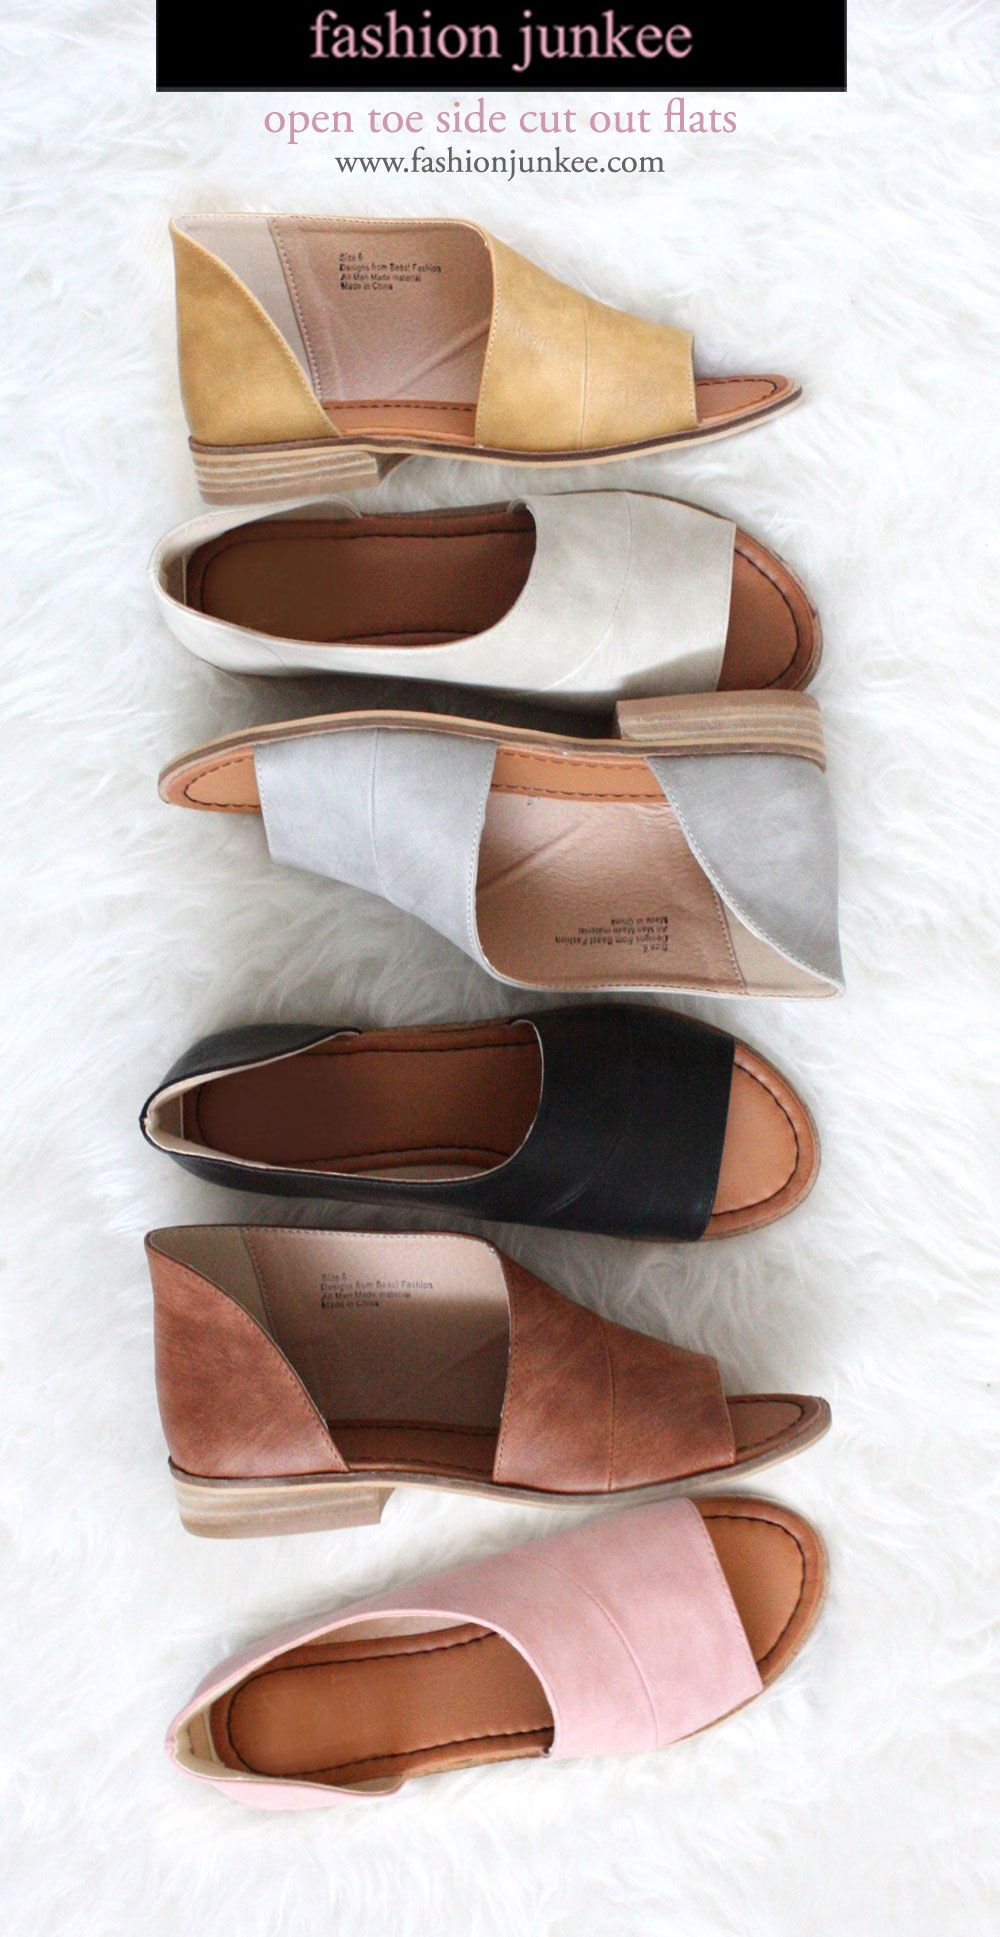 Open Toe Faux Leather Side Cutout Flats Comes In 8 Colors Cognac Brown Black Grey Taupe Blush Pink Mus Cutout Shoes Open Toe Flats Outfit Cutout Sandal